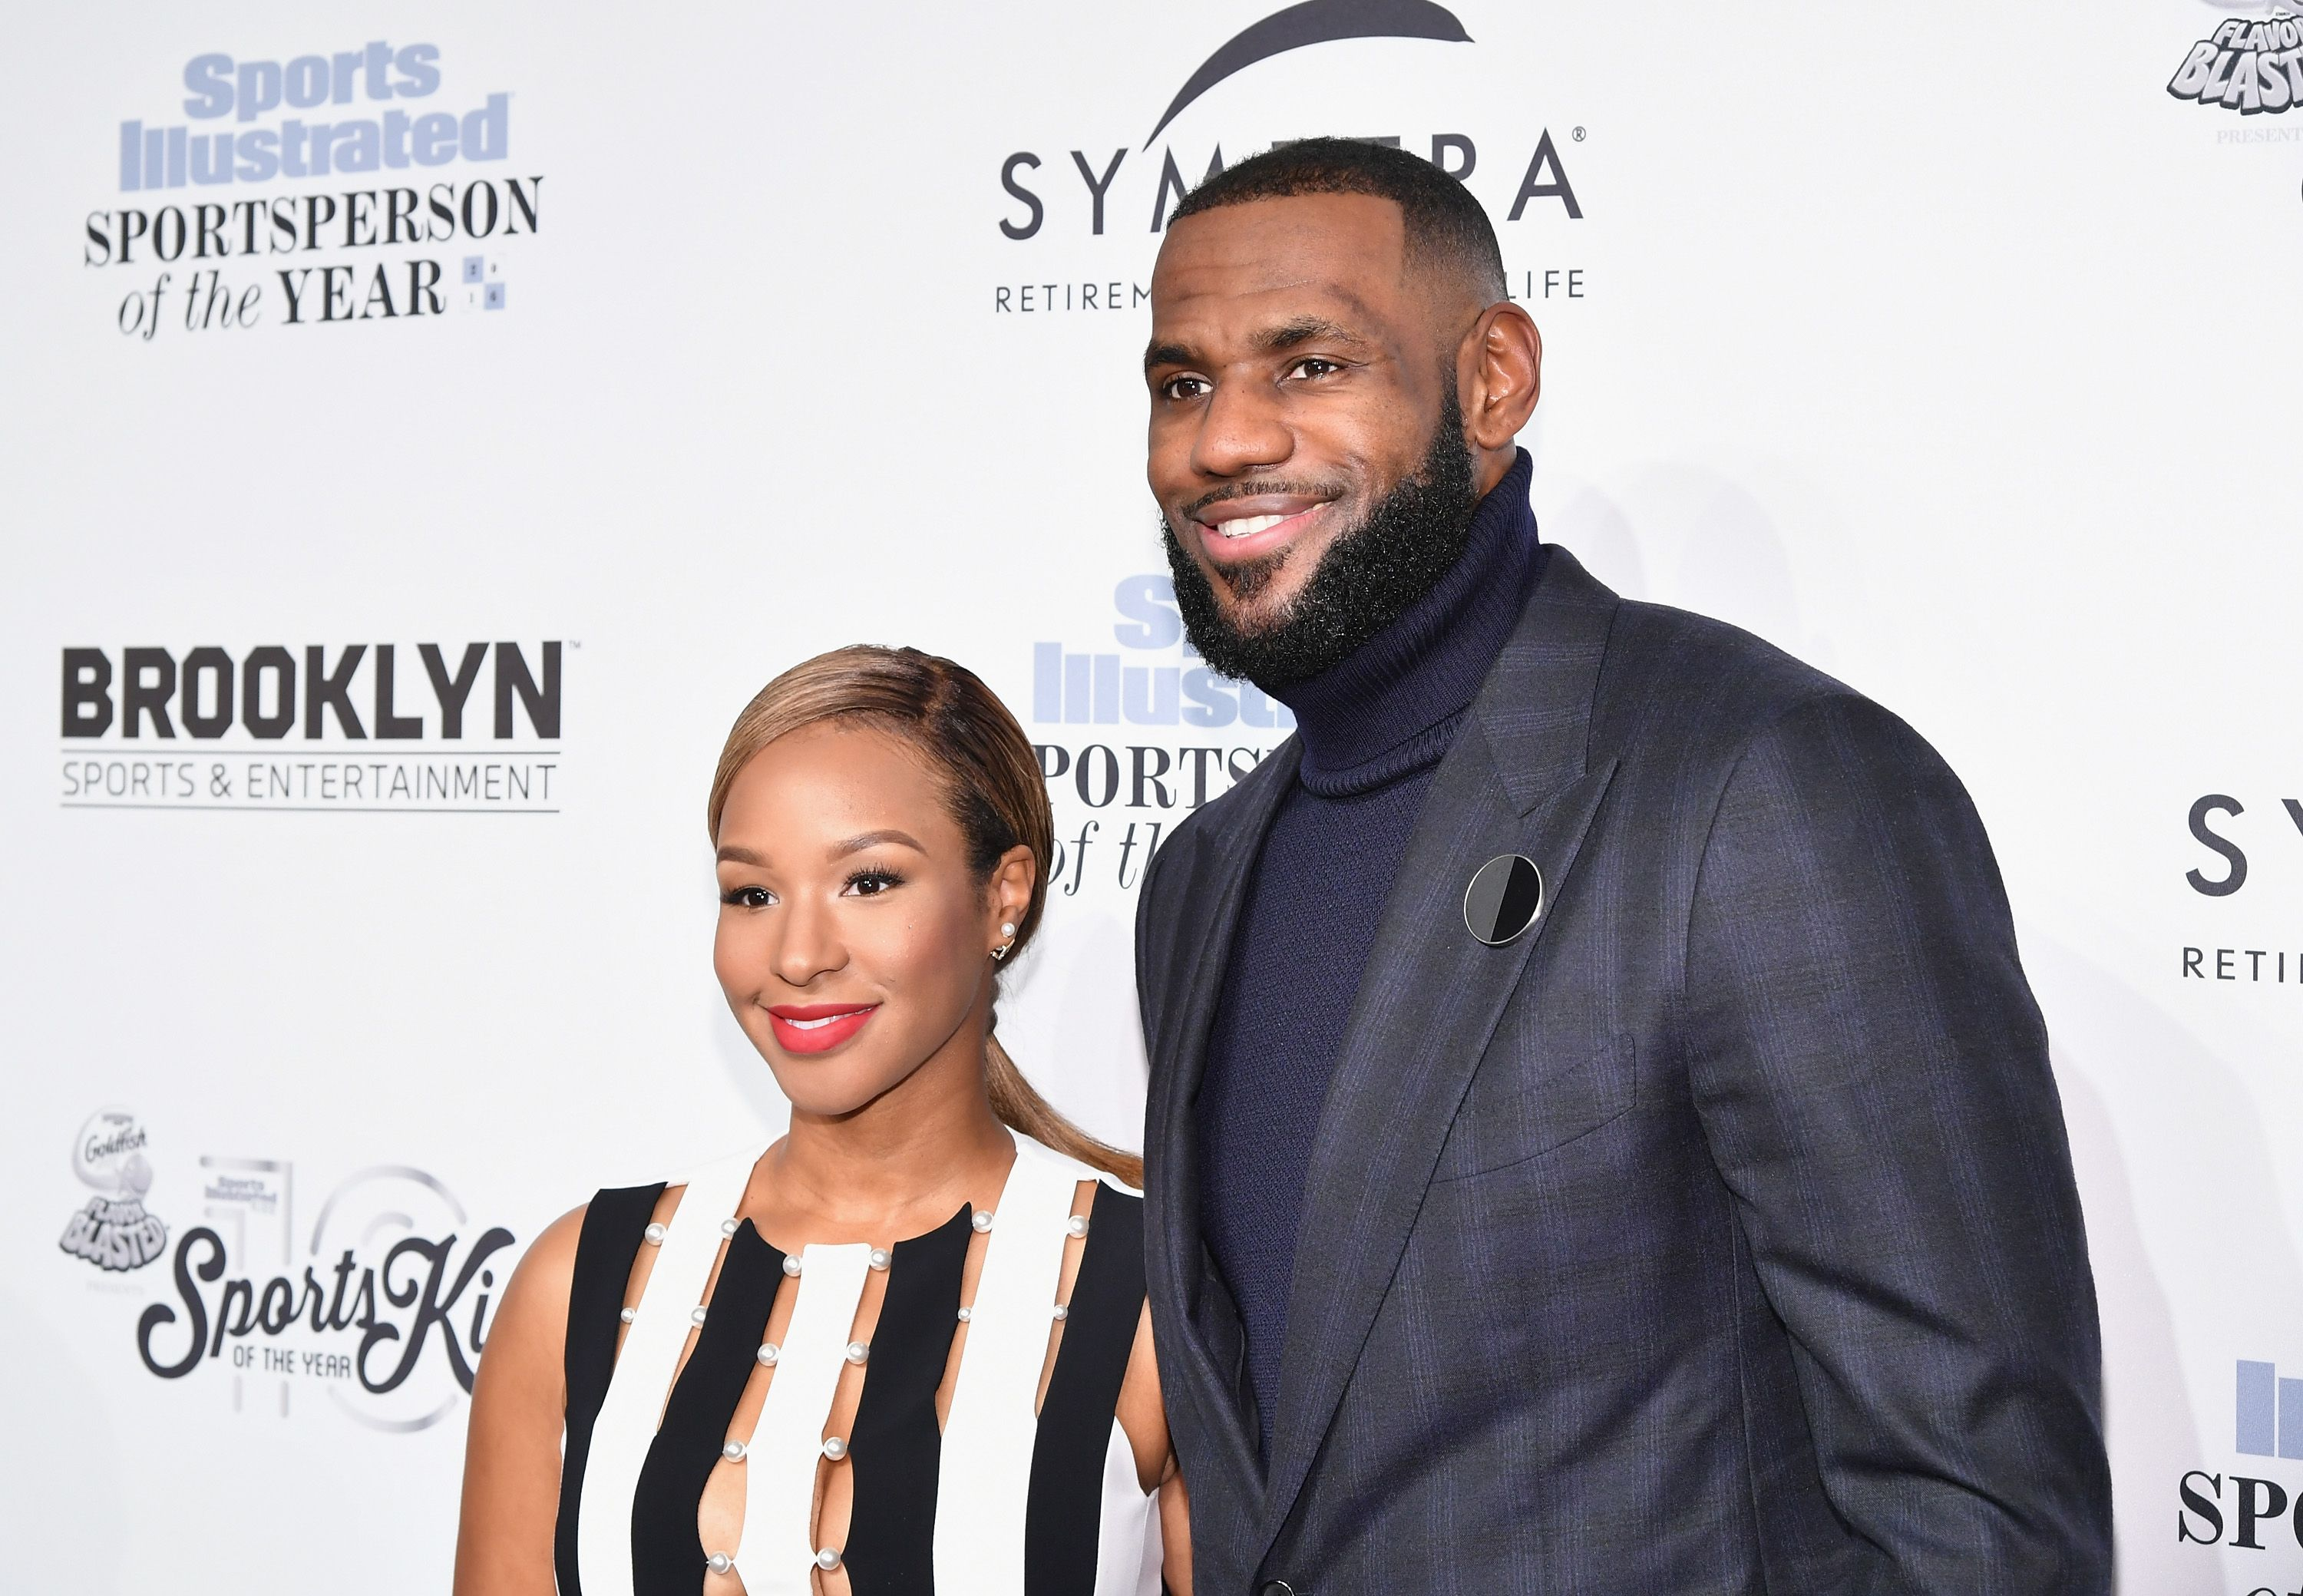 Savannah and LeBron James at the Sports Illustrated Sportsperson of the Year Ceremony on December 12, 2016 in New York. | Photo: Getty Images